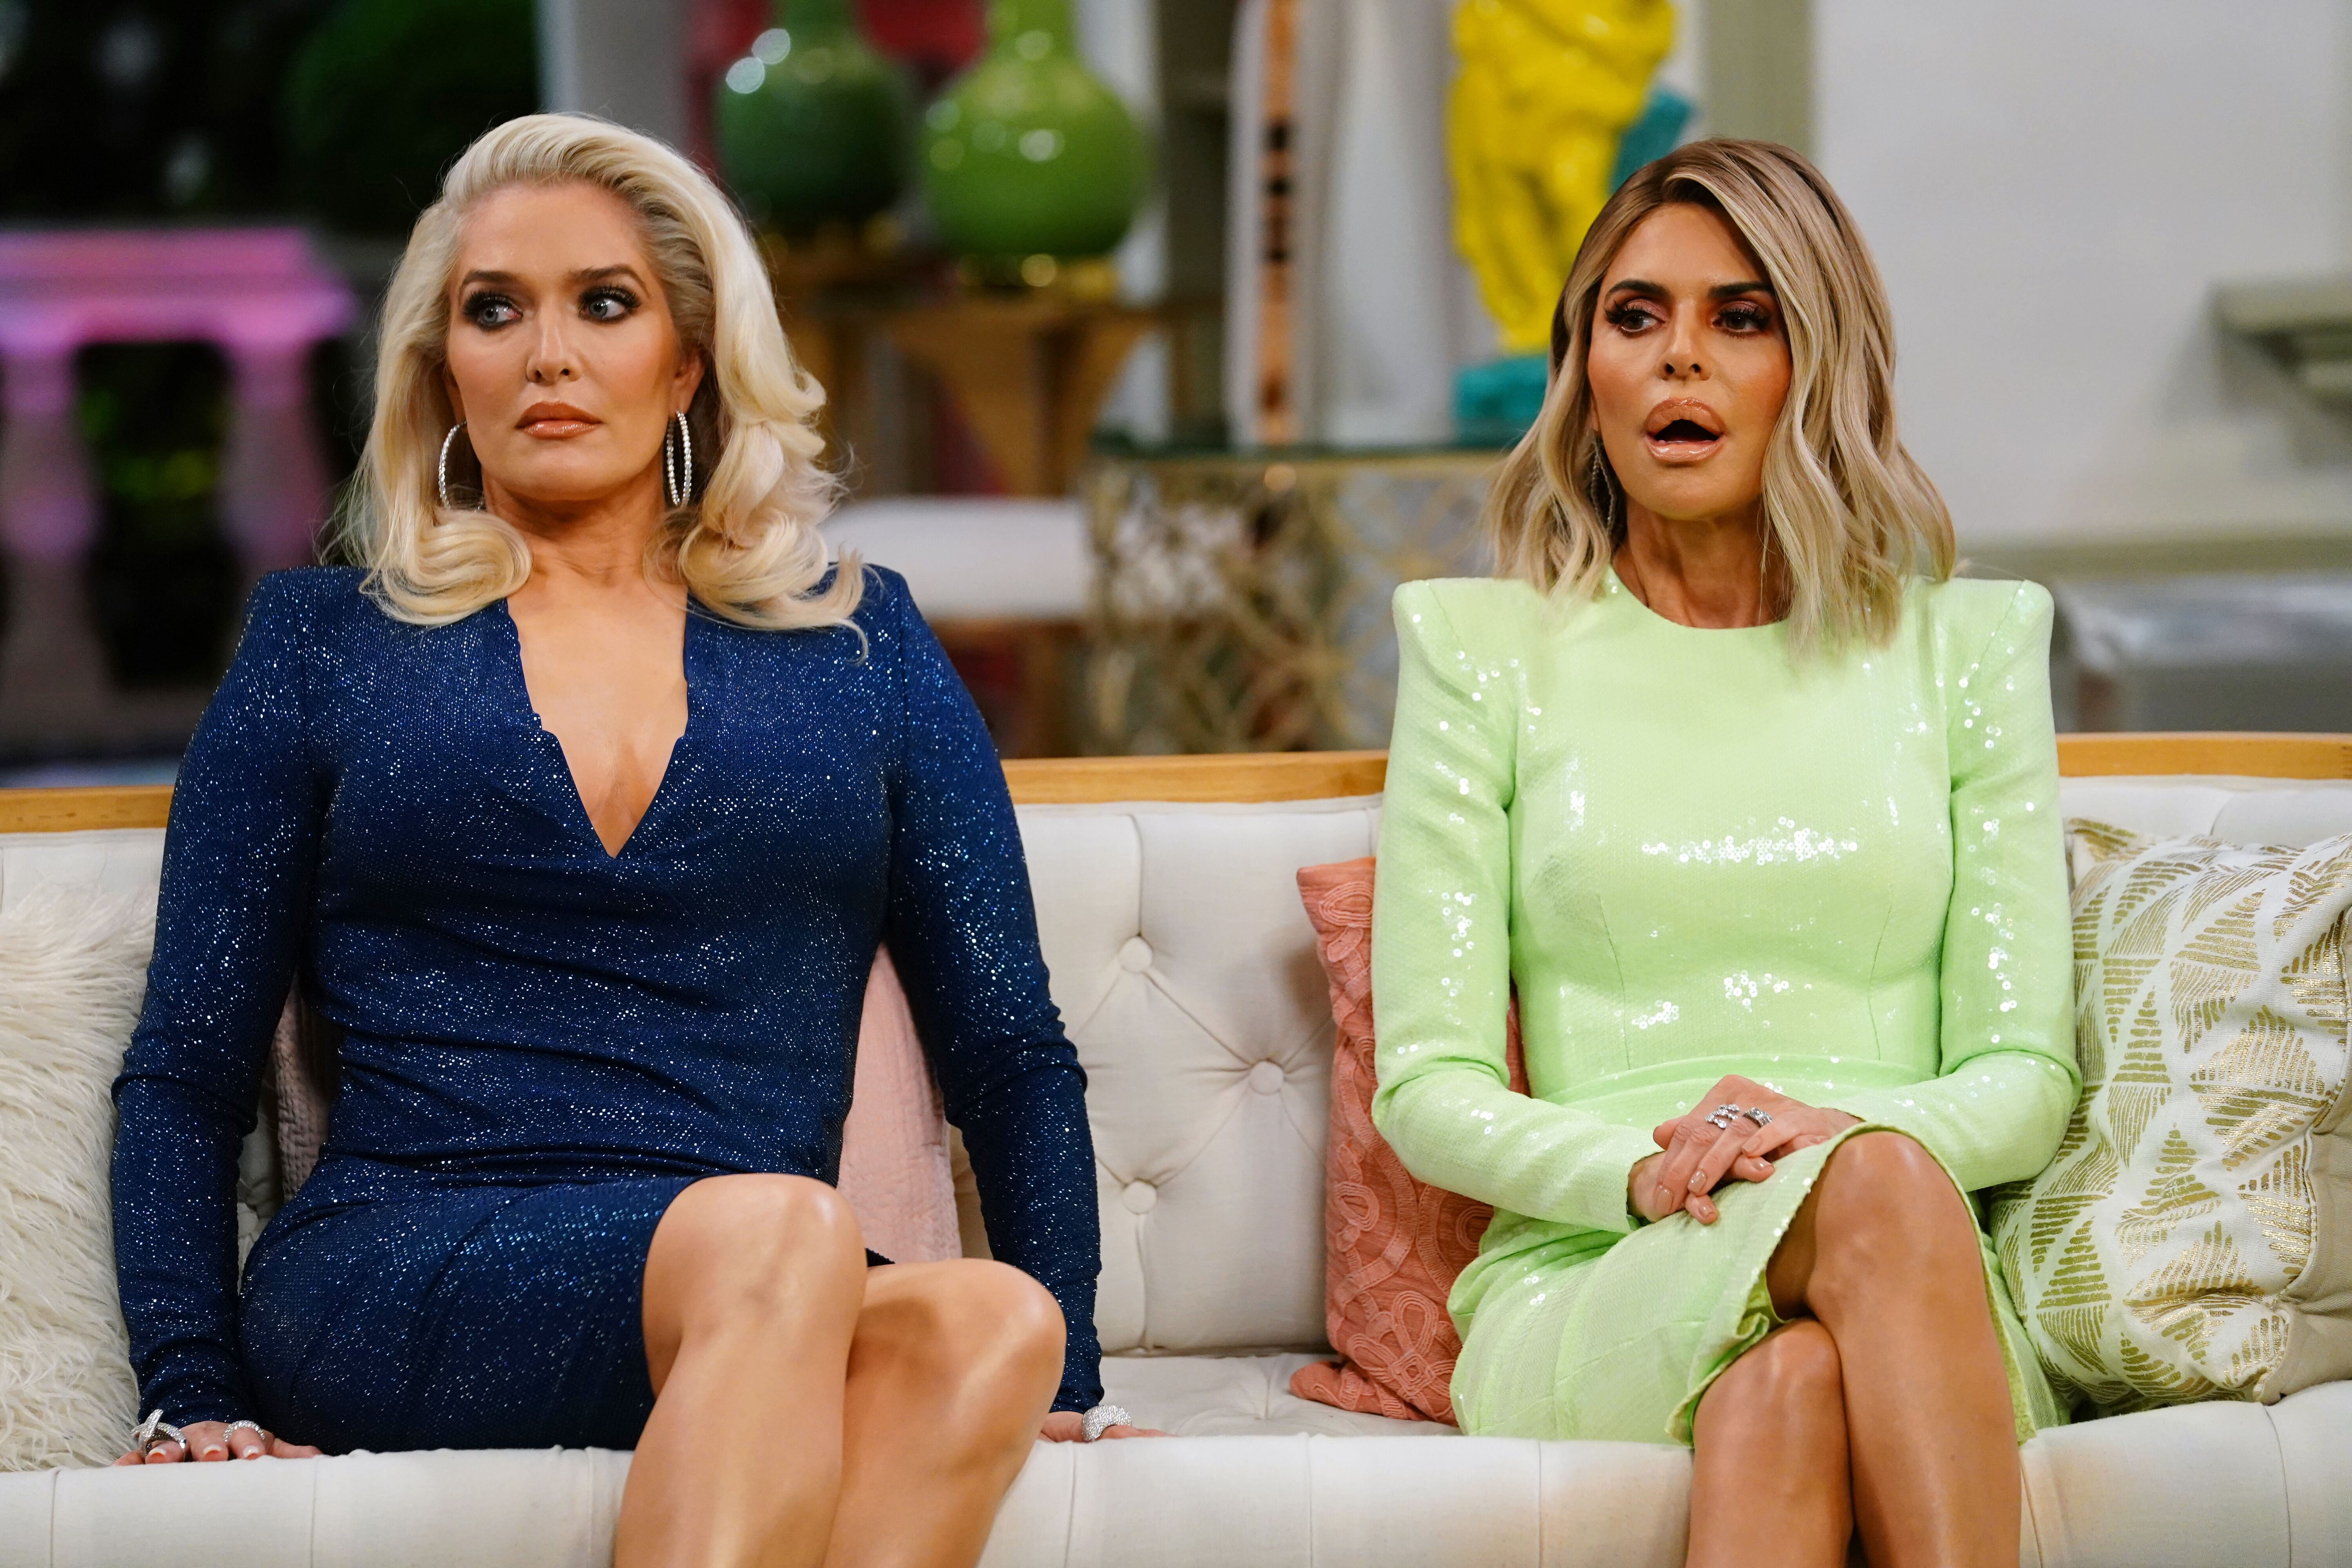 The Real Housewives of Beverly Hills: The dramatics of the reunion - part 1